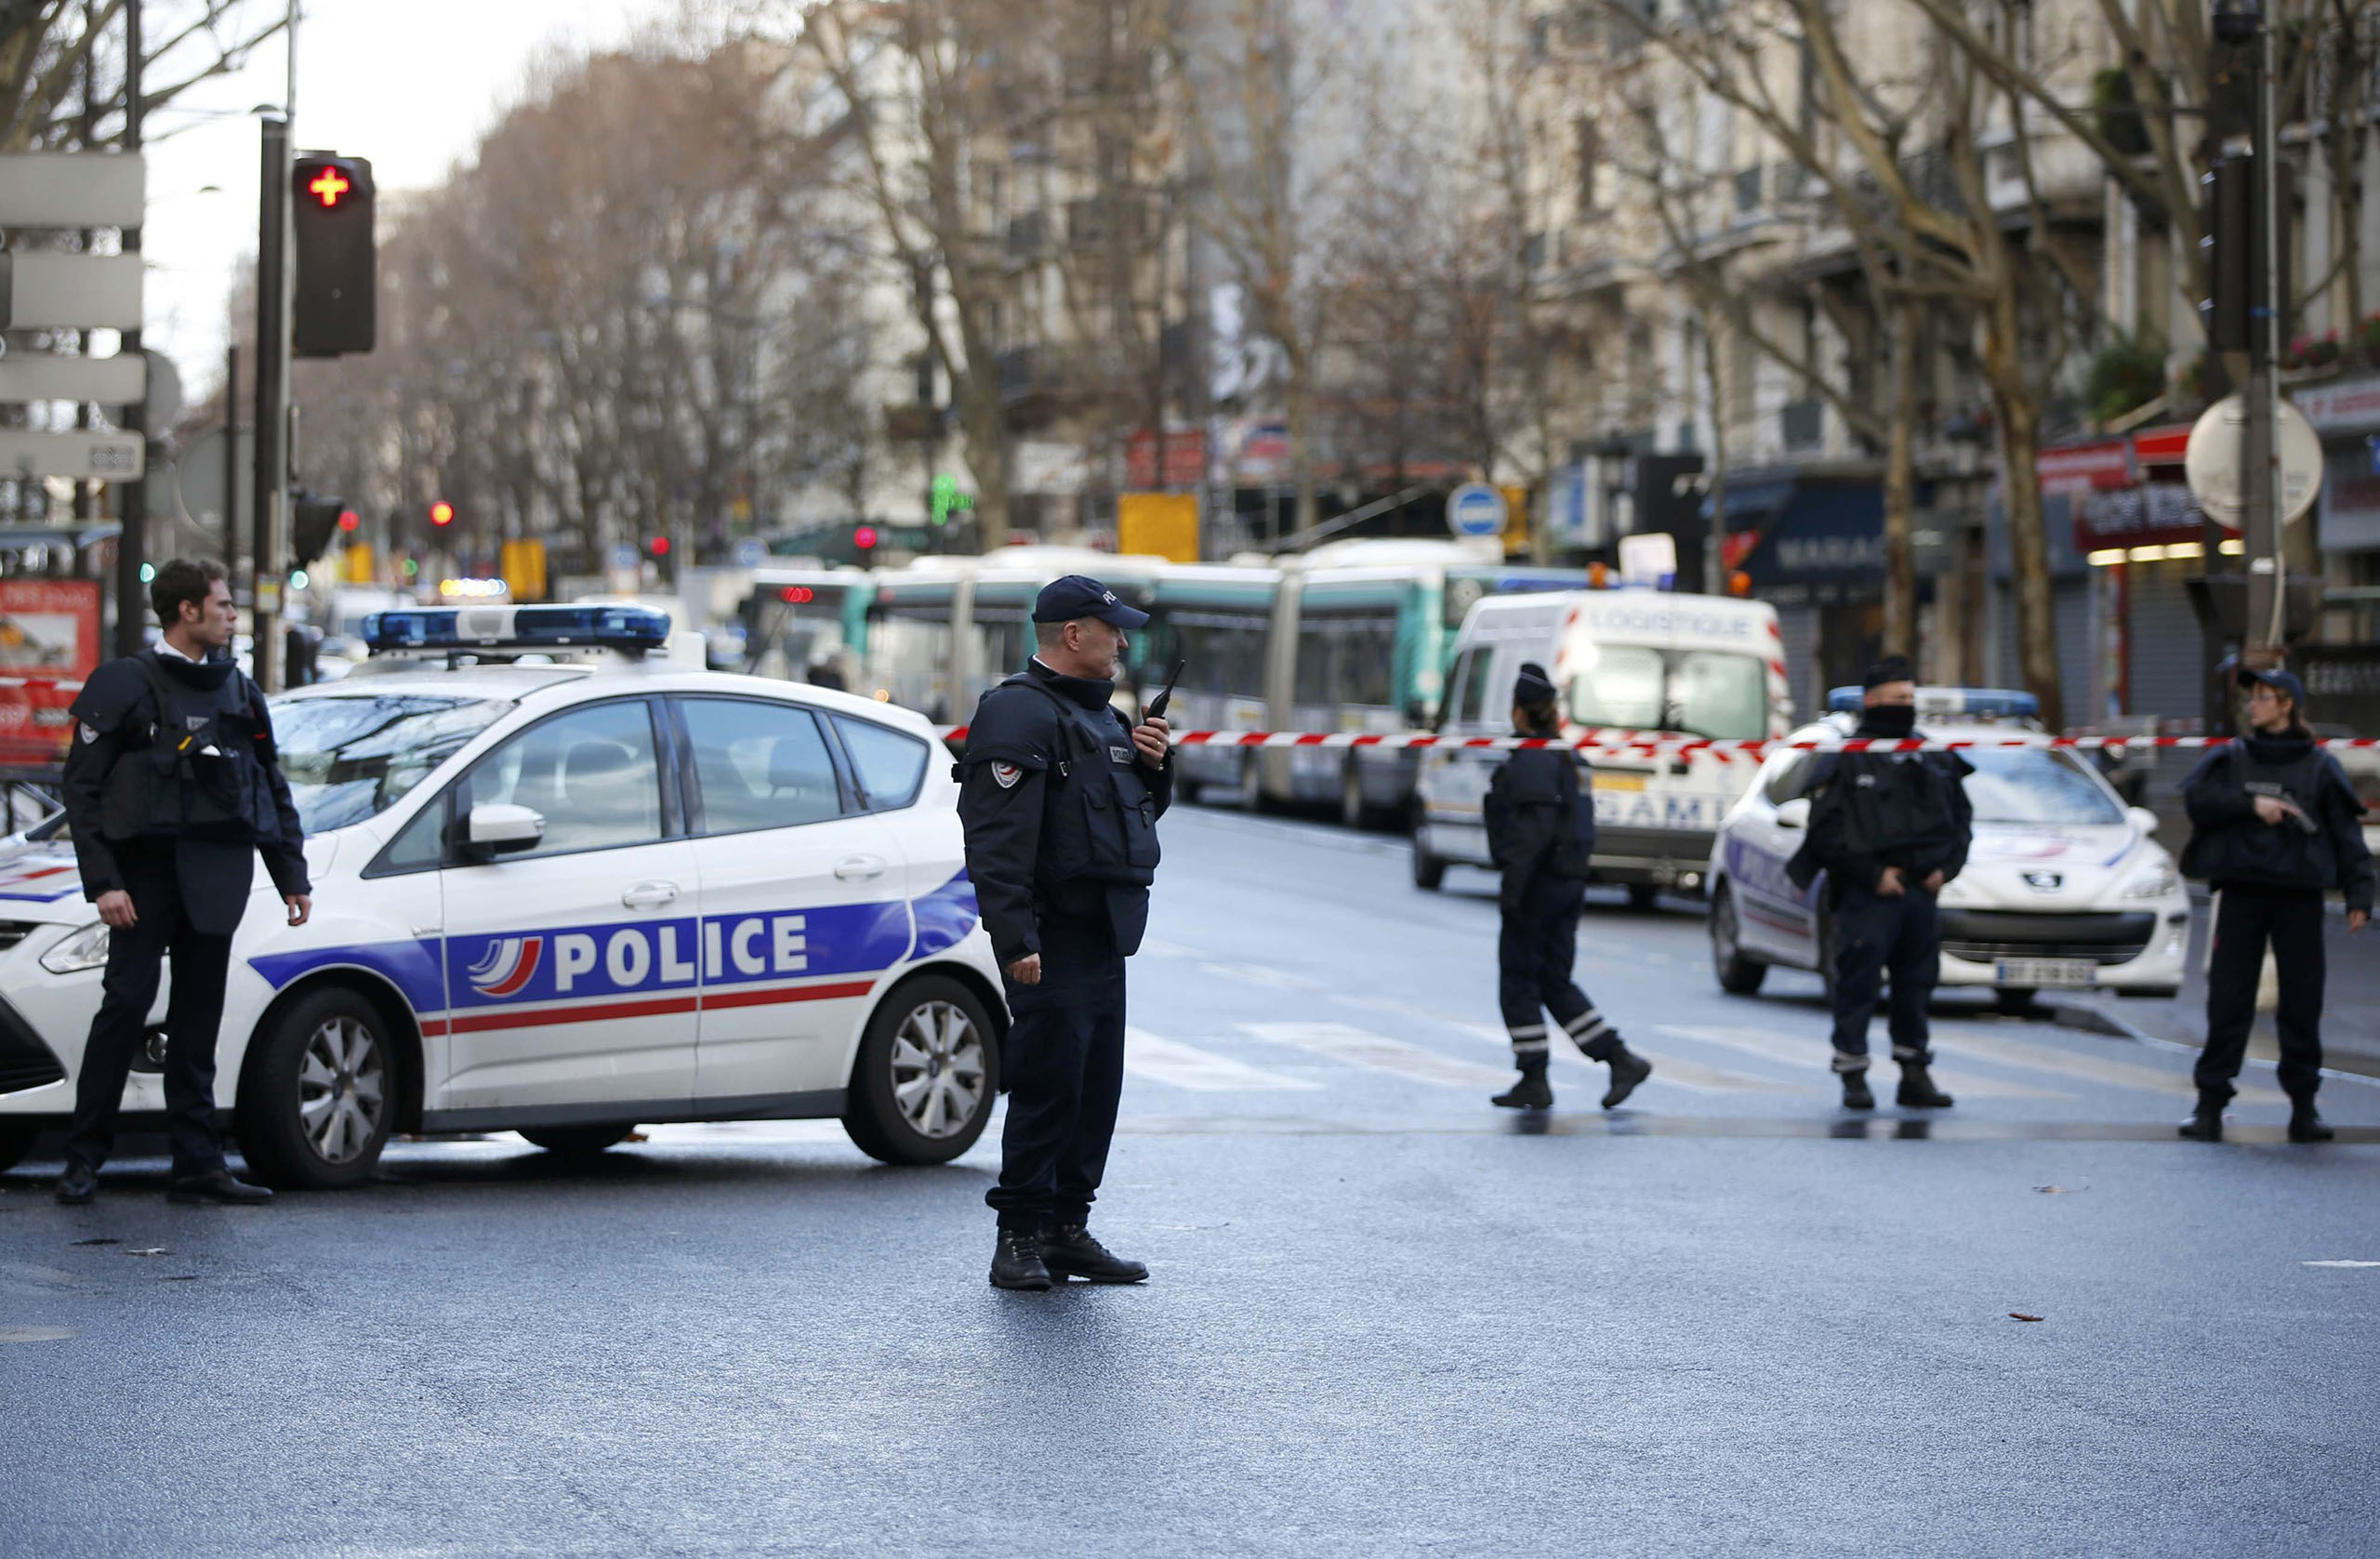 French police secure the area after a knife-wielding man was shot dead after attempting to enter a police station in the 18th district in Paris, Jan. 7, 2016.